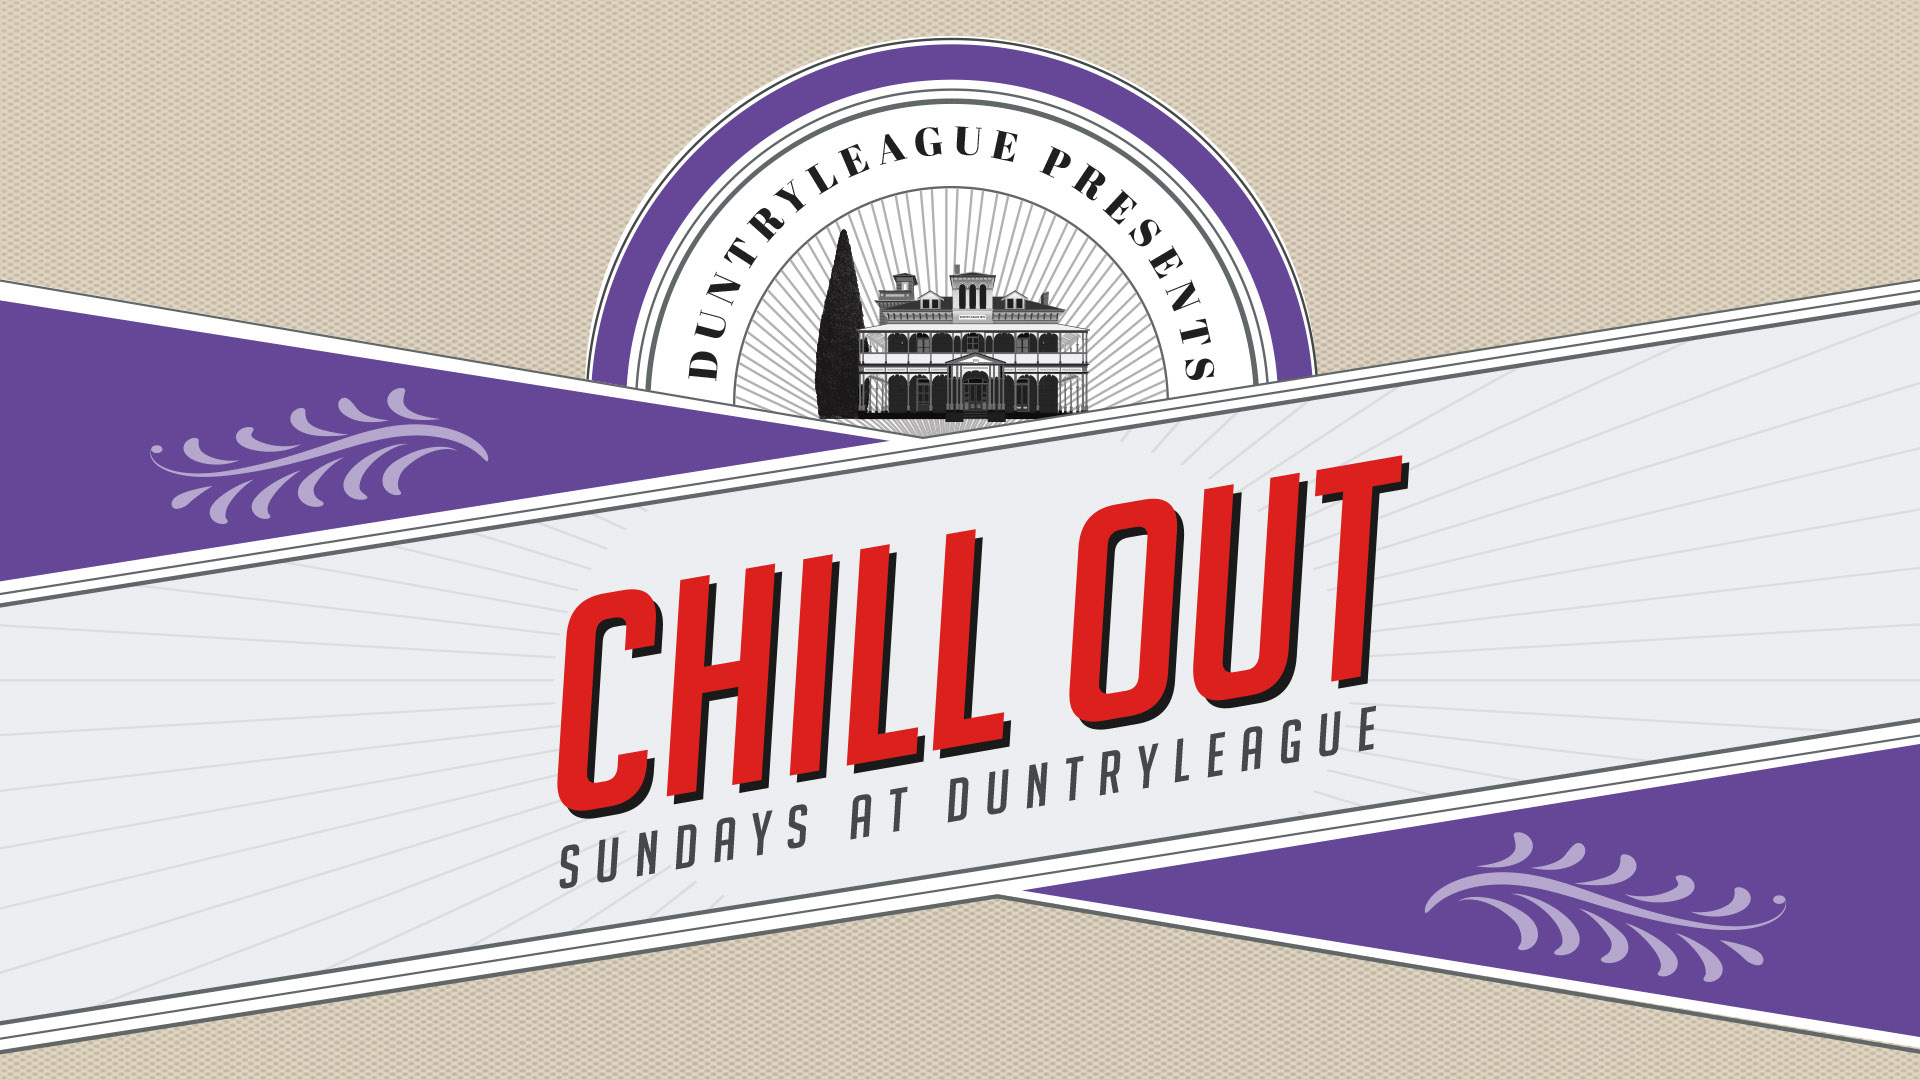 chill out sundays at duntryleague